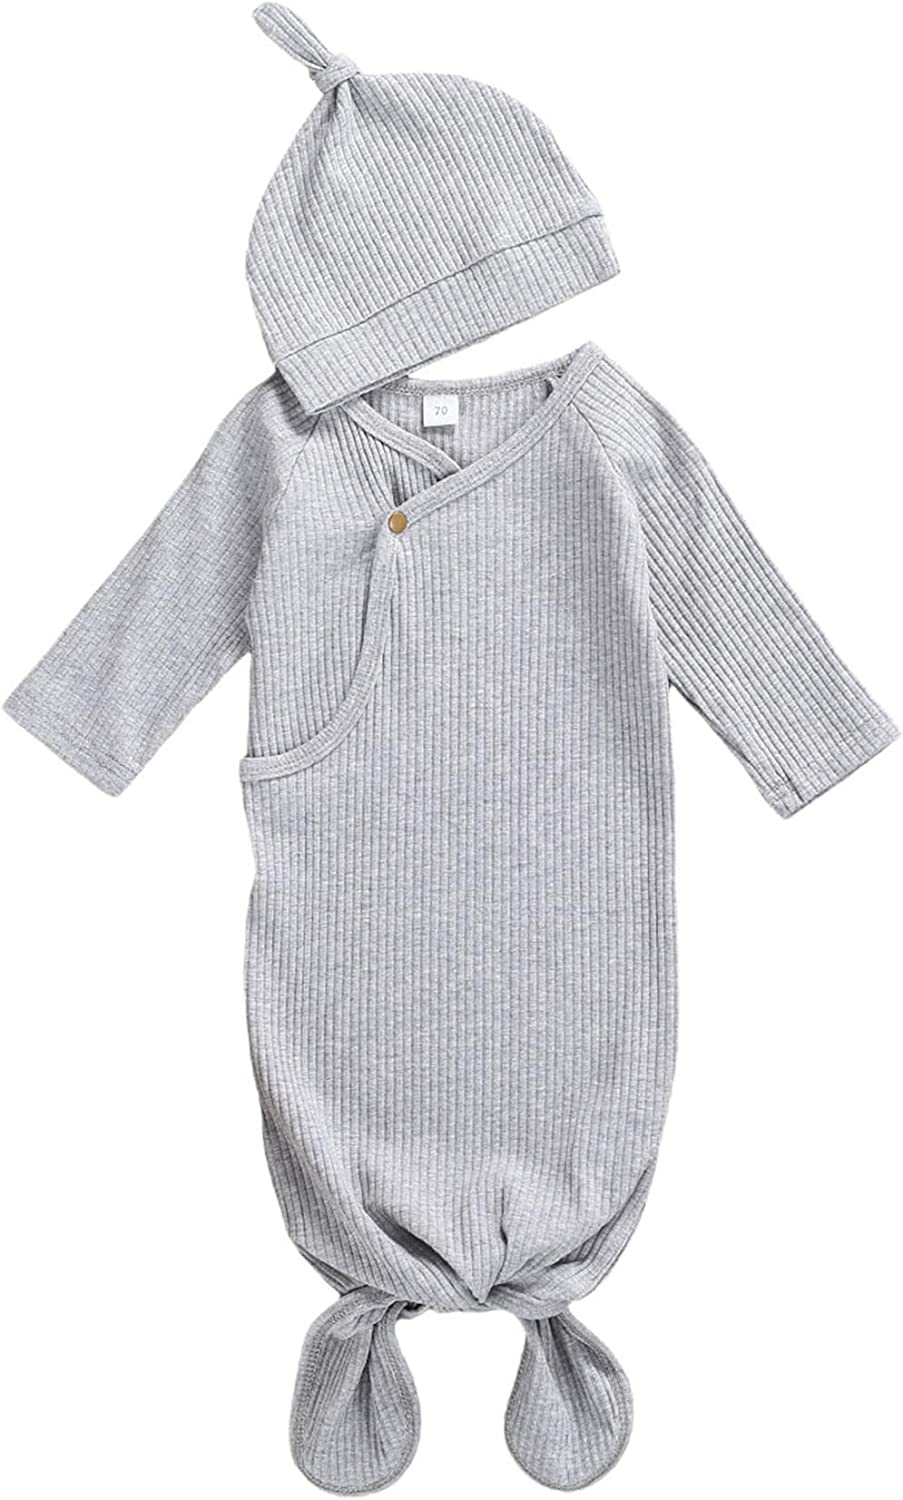 Unisex Infant Baby Gown Sleeping Bag Newborn Boy Girl Knotted Sleeper Nighgown Pajamas Coming Home Outfits (B Gray, 0-3 Months)